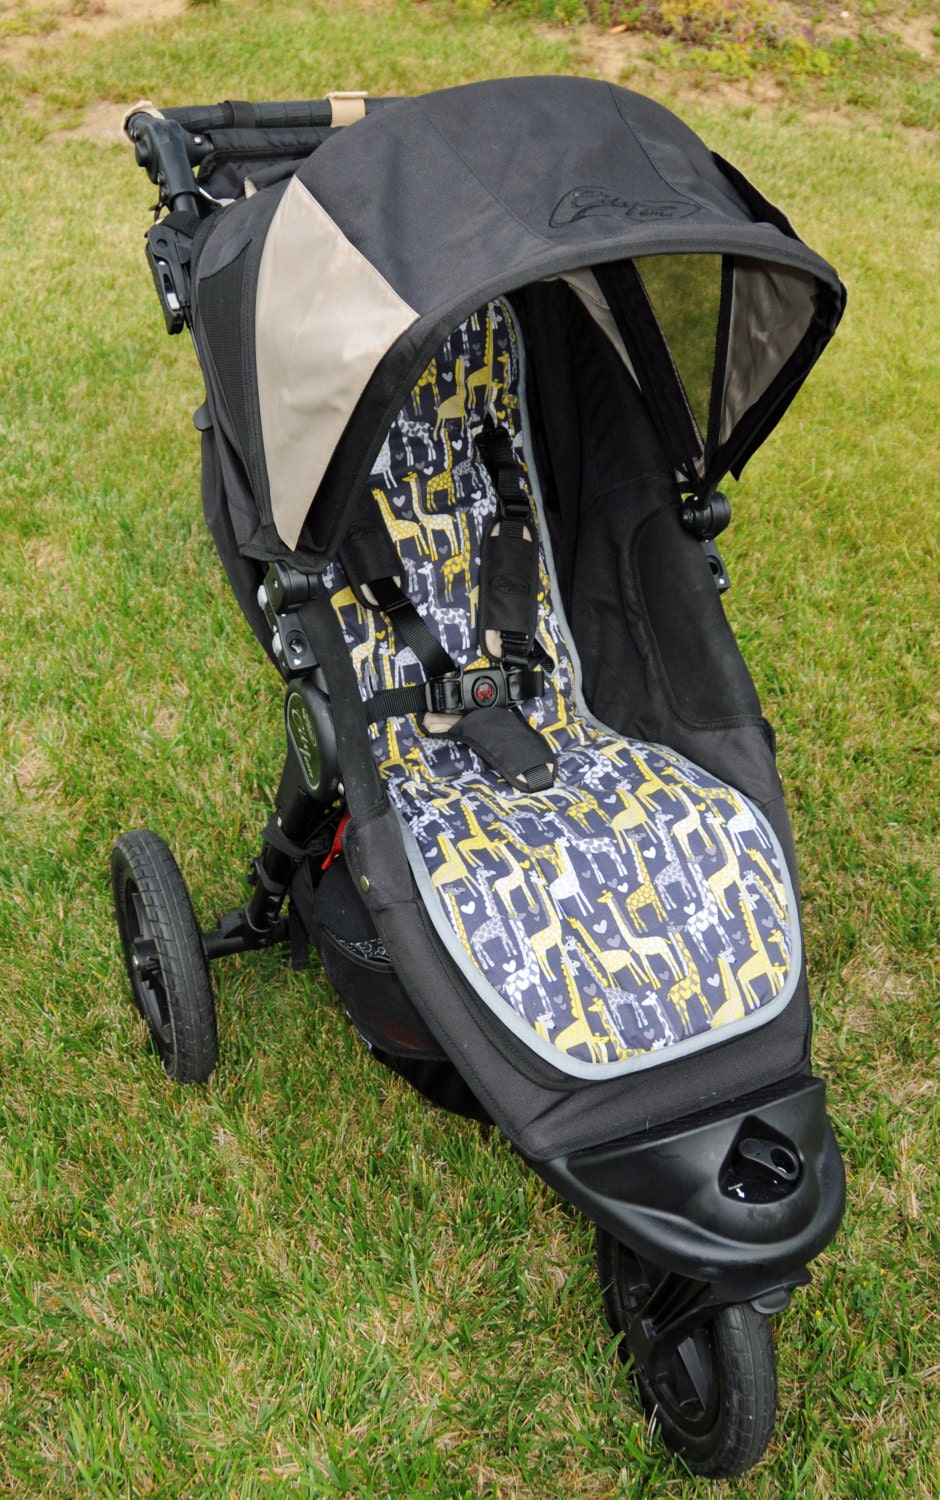 Strollers Amp Accessories In Baby Amp Toddler Gt Gear Etsy Kids